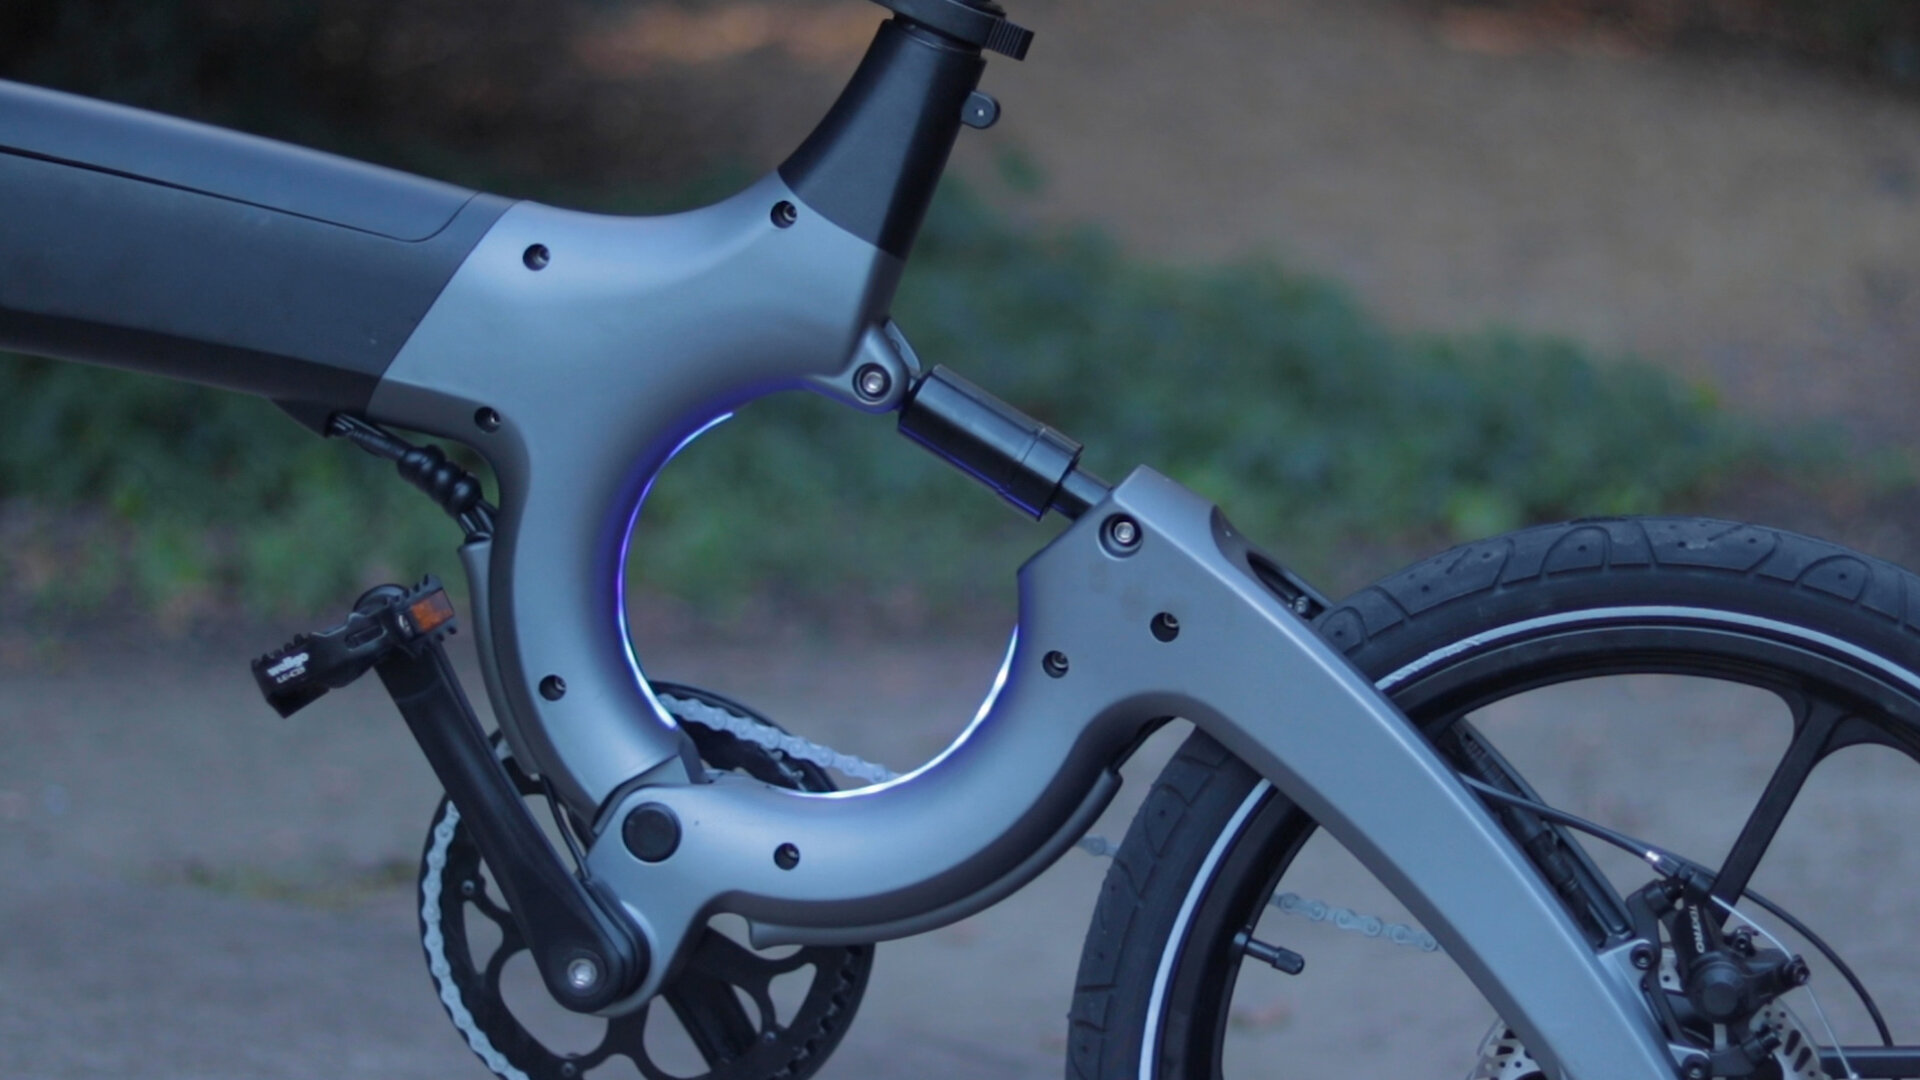 flowdot-electric-bike-review-2019-frame-light.jpg